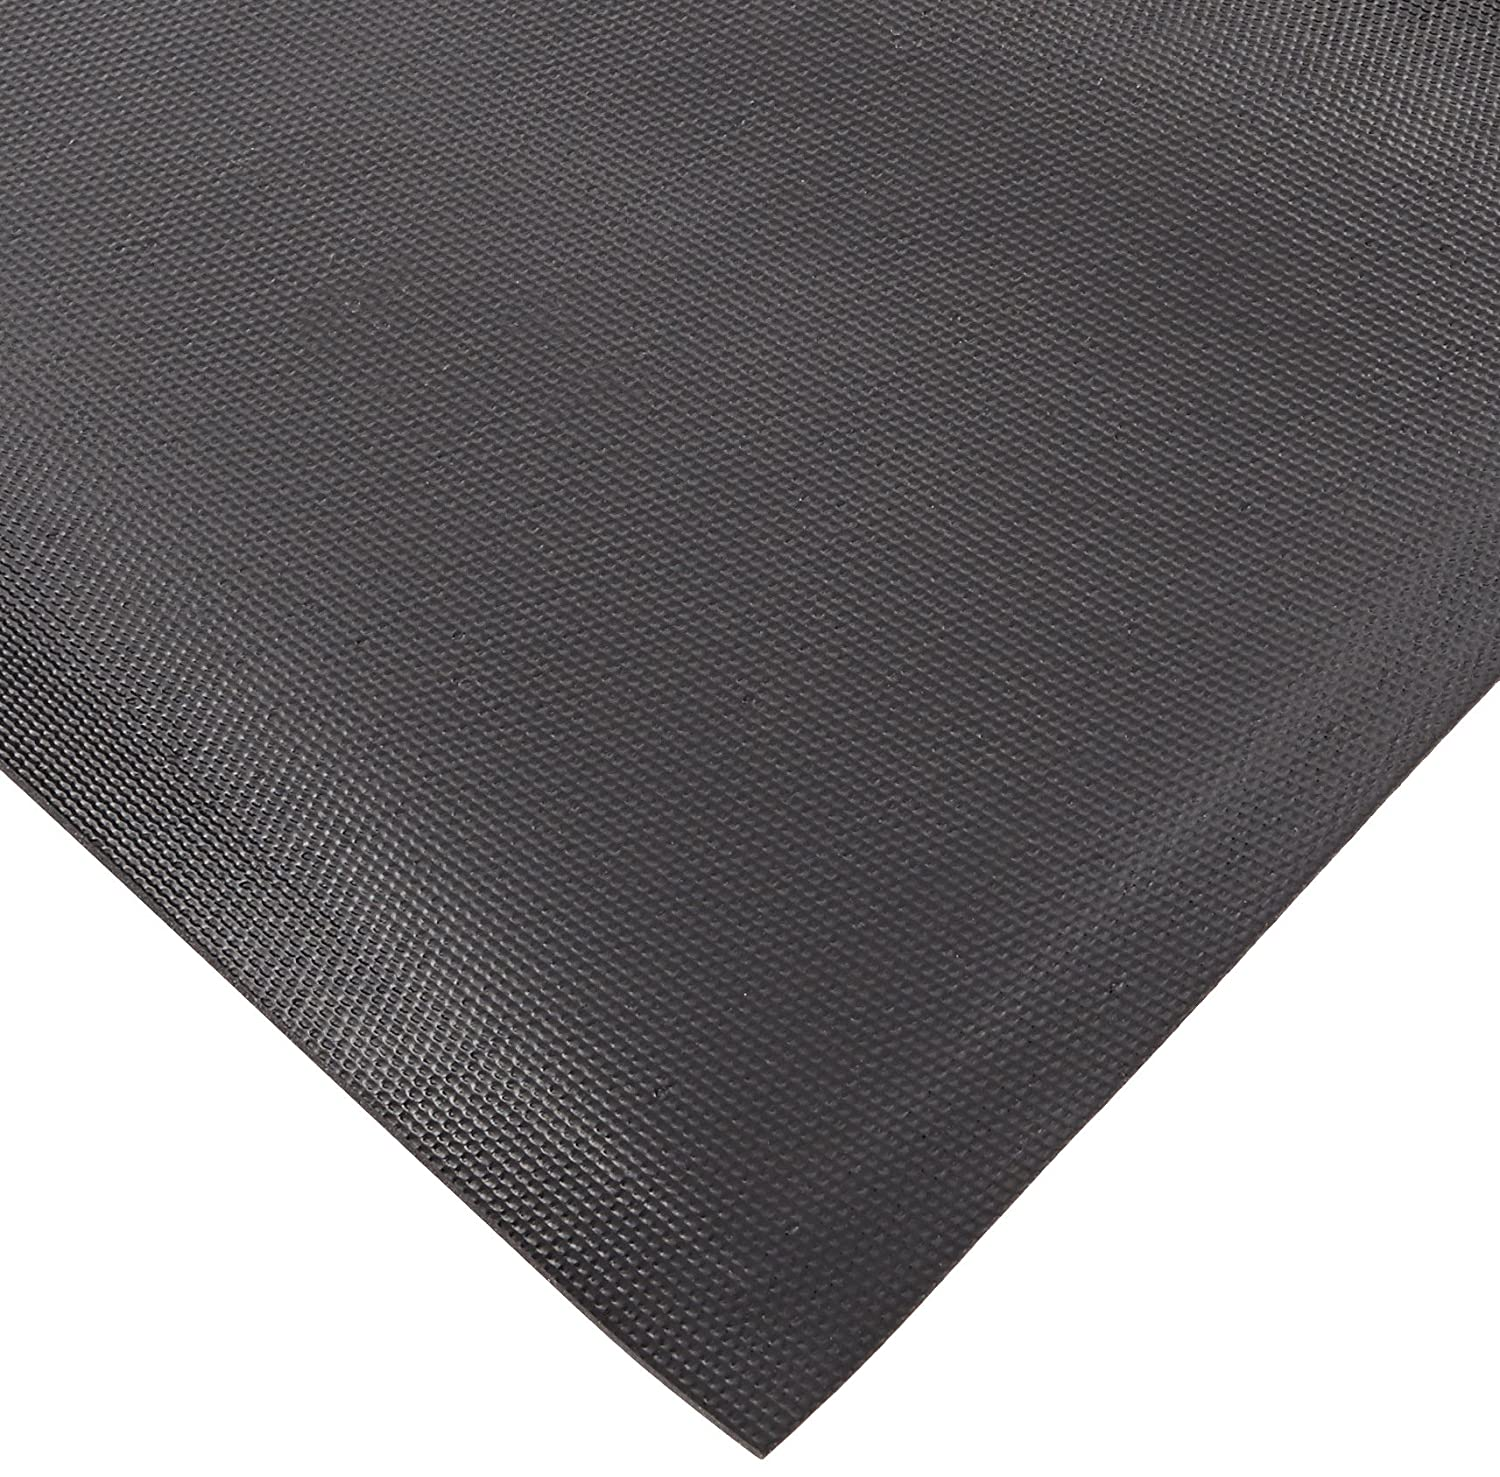 for Home or Office Notrax 132 Estes Entrance Mat 4 X 6 Hunter Green